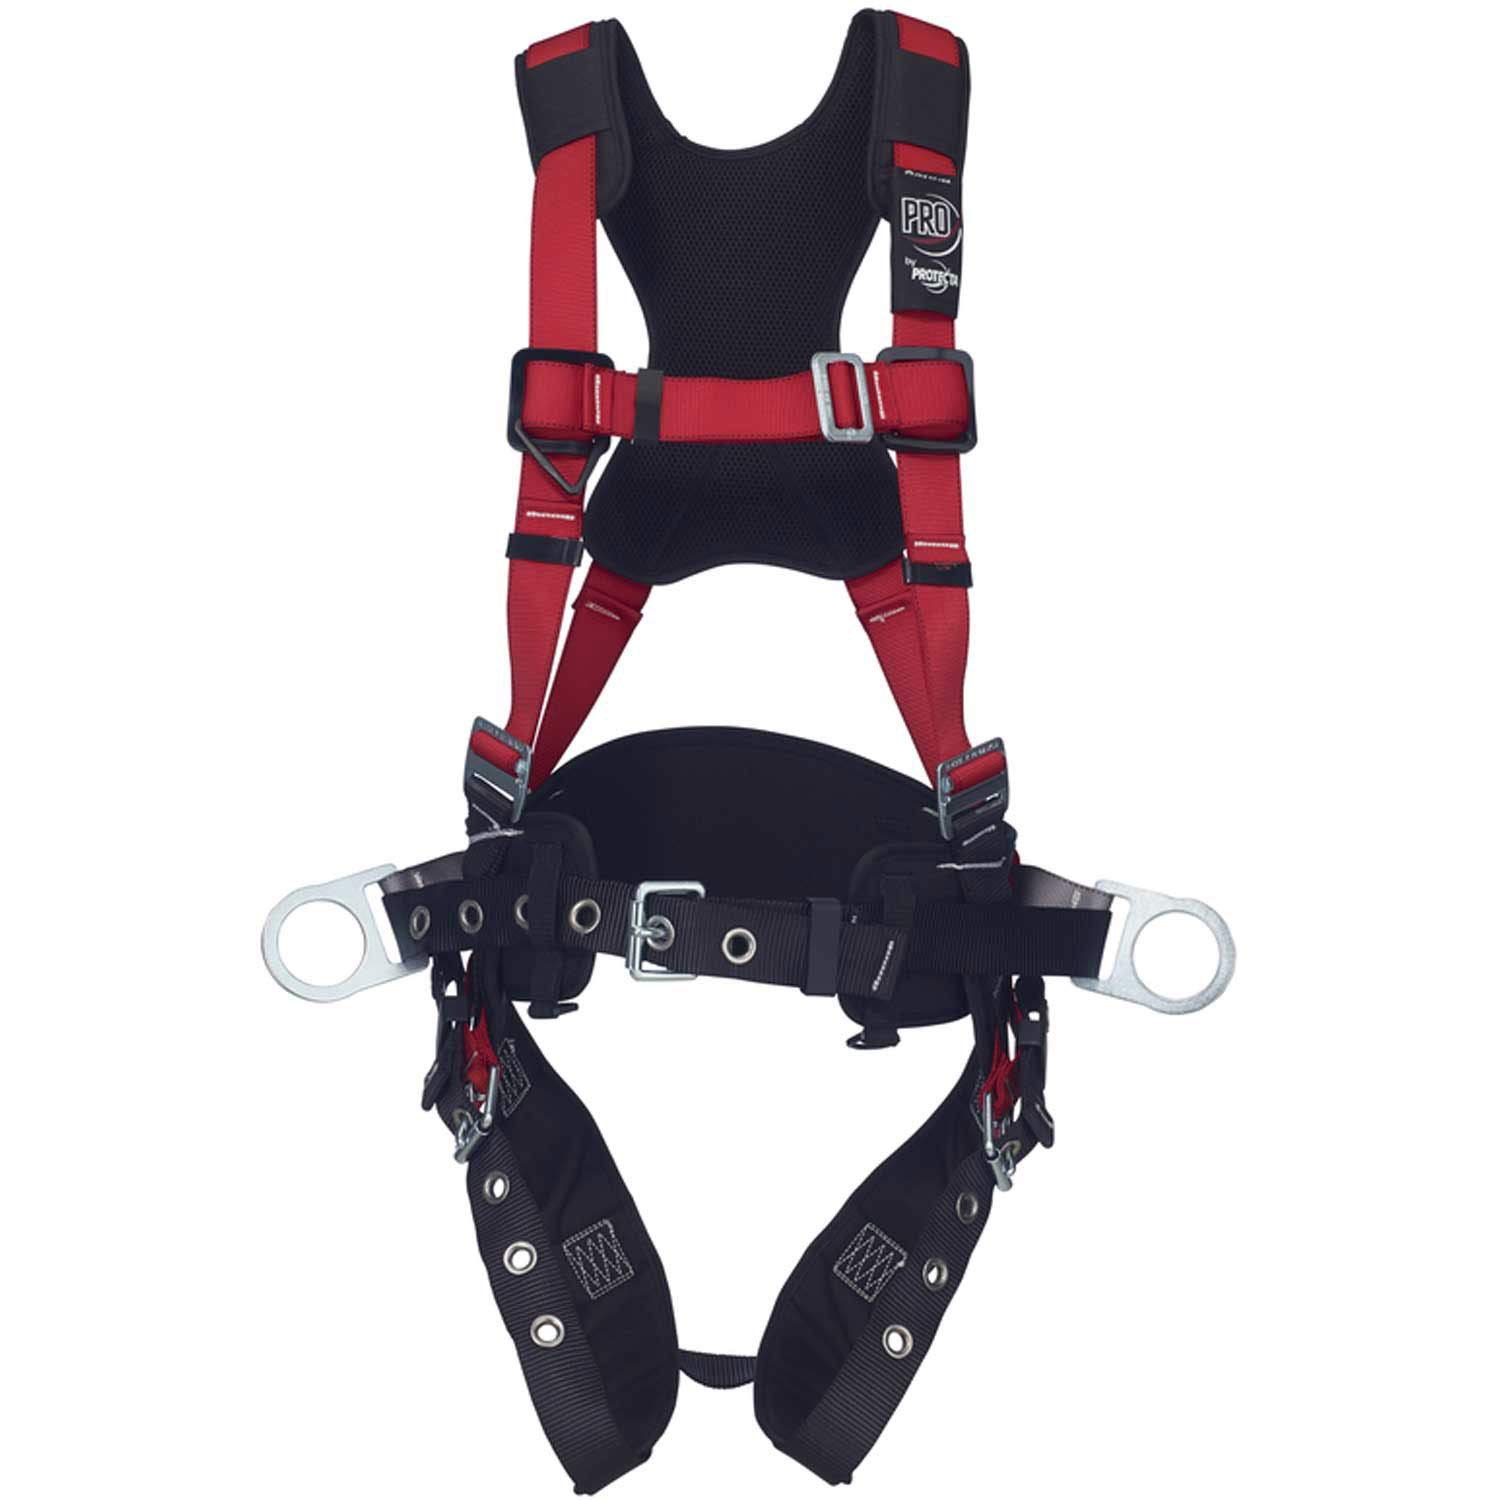 Protecta 1161205 Comfort Construction Style Positioning Harness Size Medium/Large by ProTecta